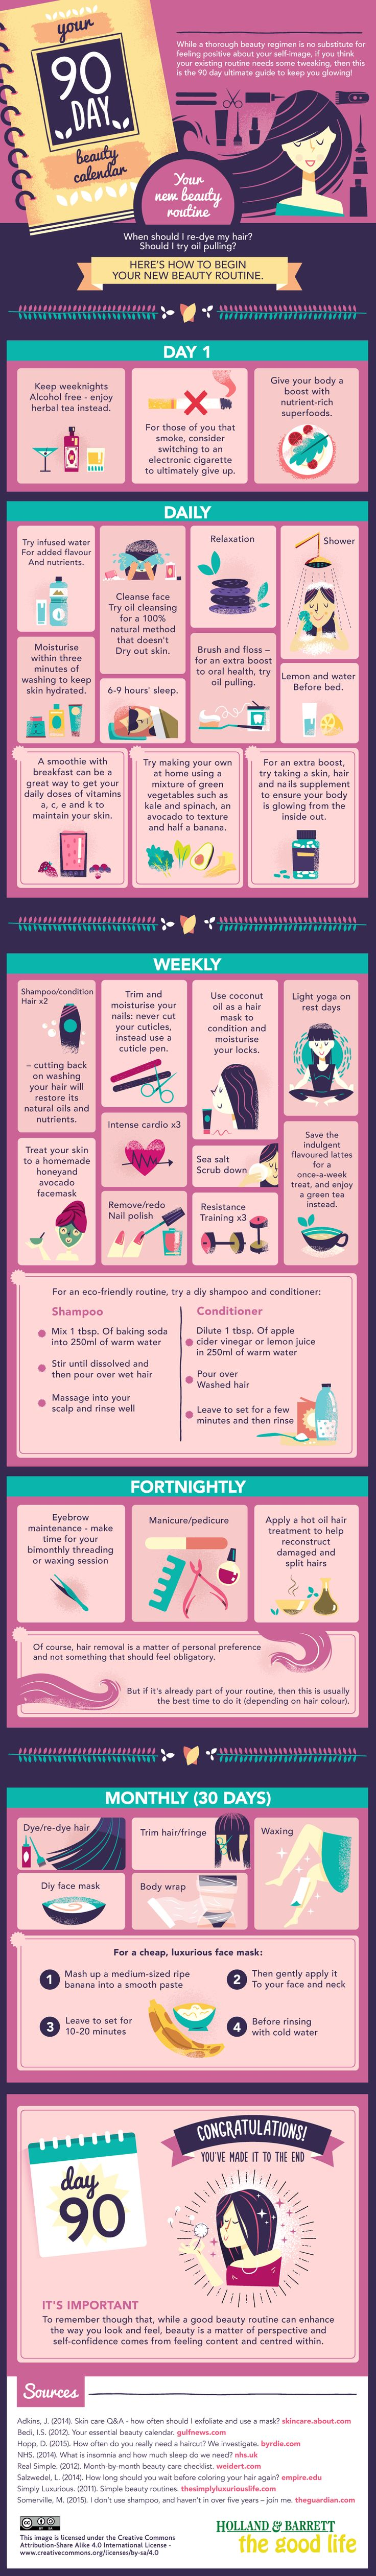 Holland and Barrett present a 90-day schedule to make sure you remain at your beautiful best in a completely healthy way—all in a wonderful infographic.